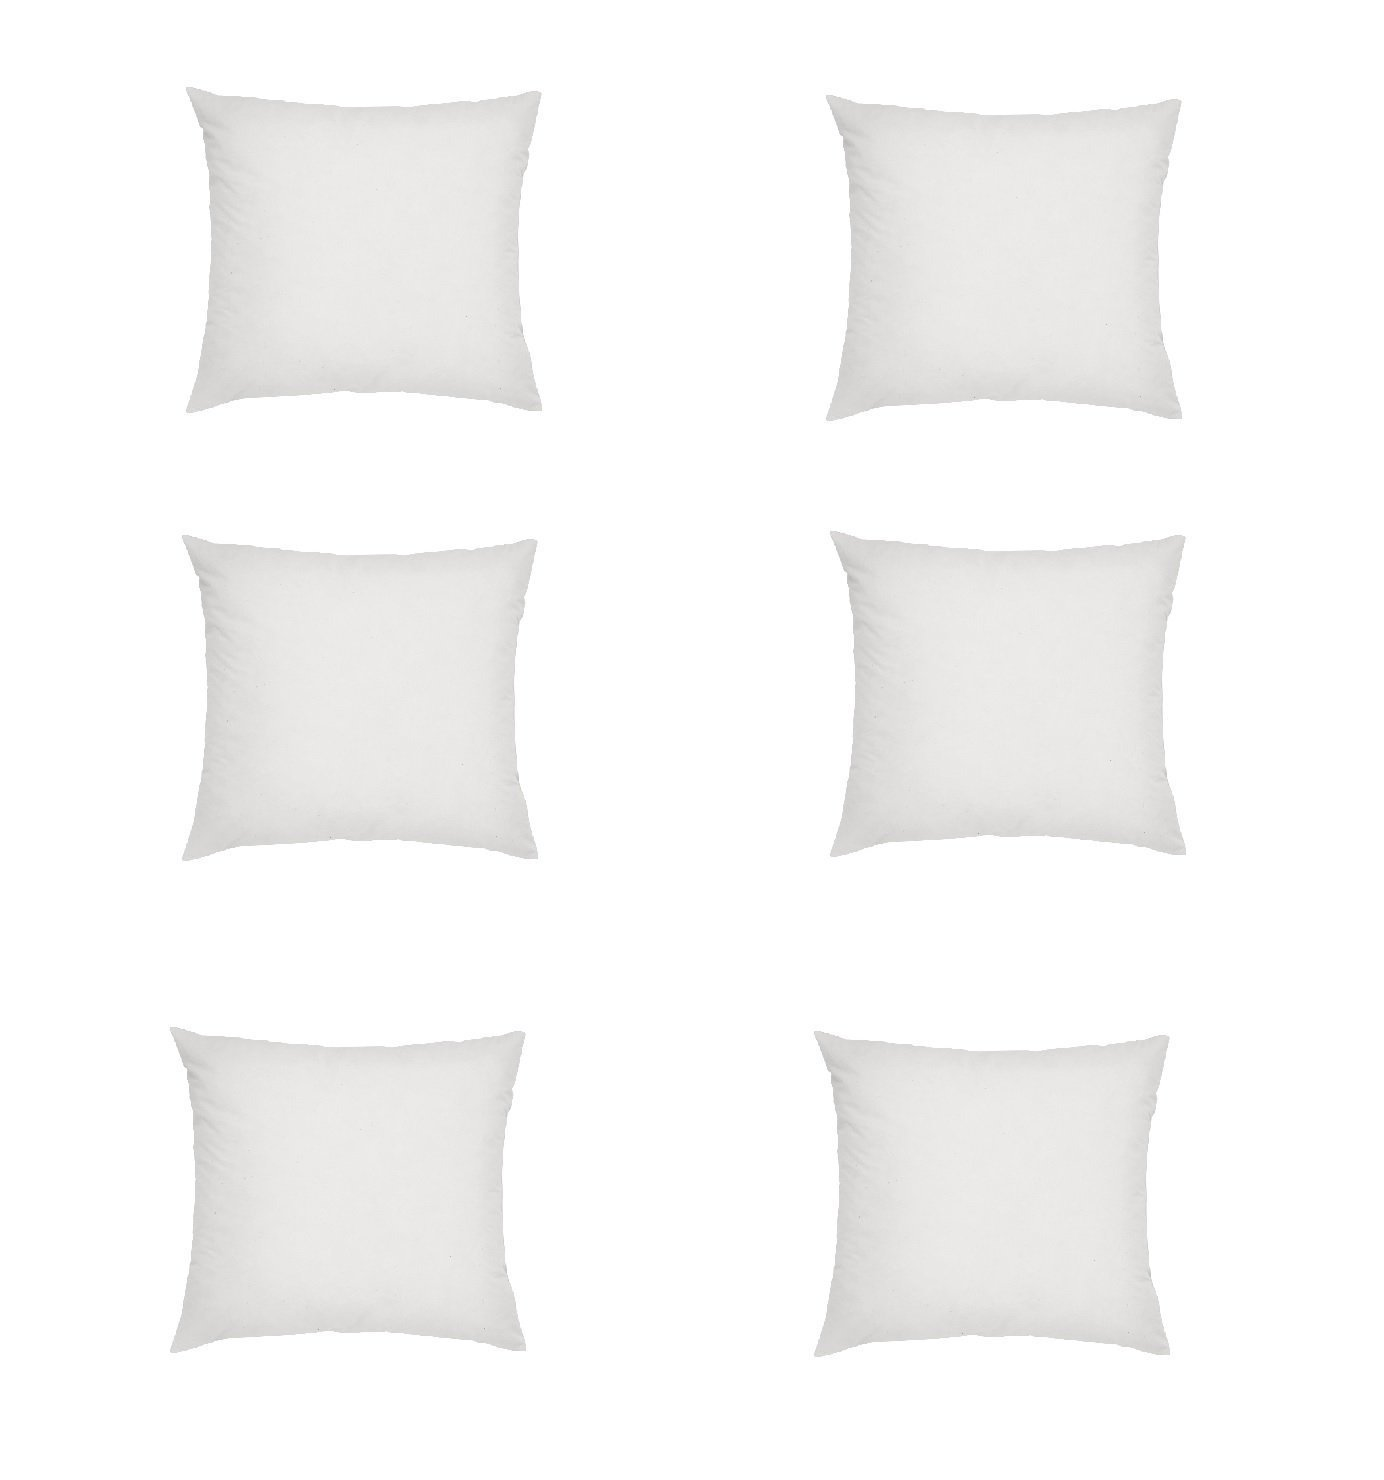 Web Linens Inc - Six Square Polyester Pillow Inserts with Six Zippered Covers - 24 x 24 inch